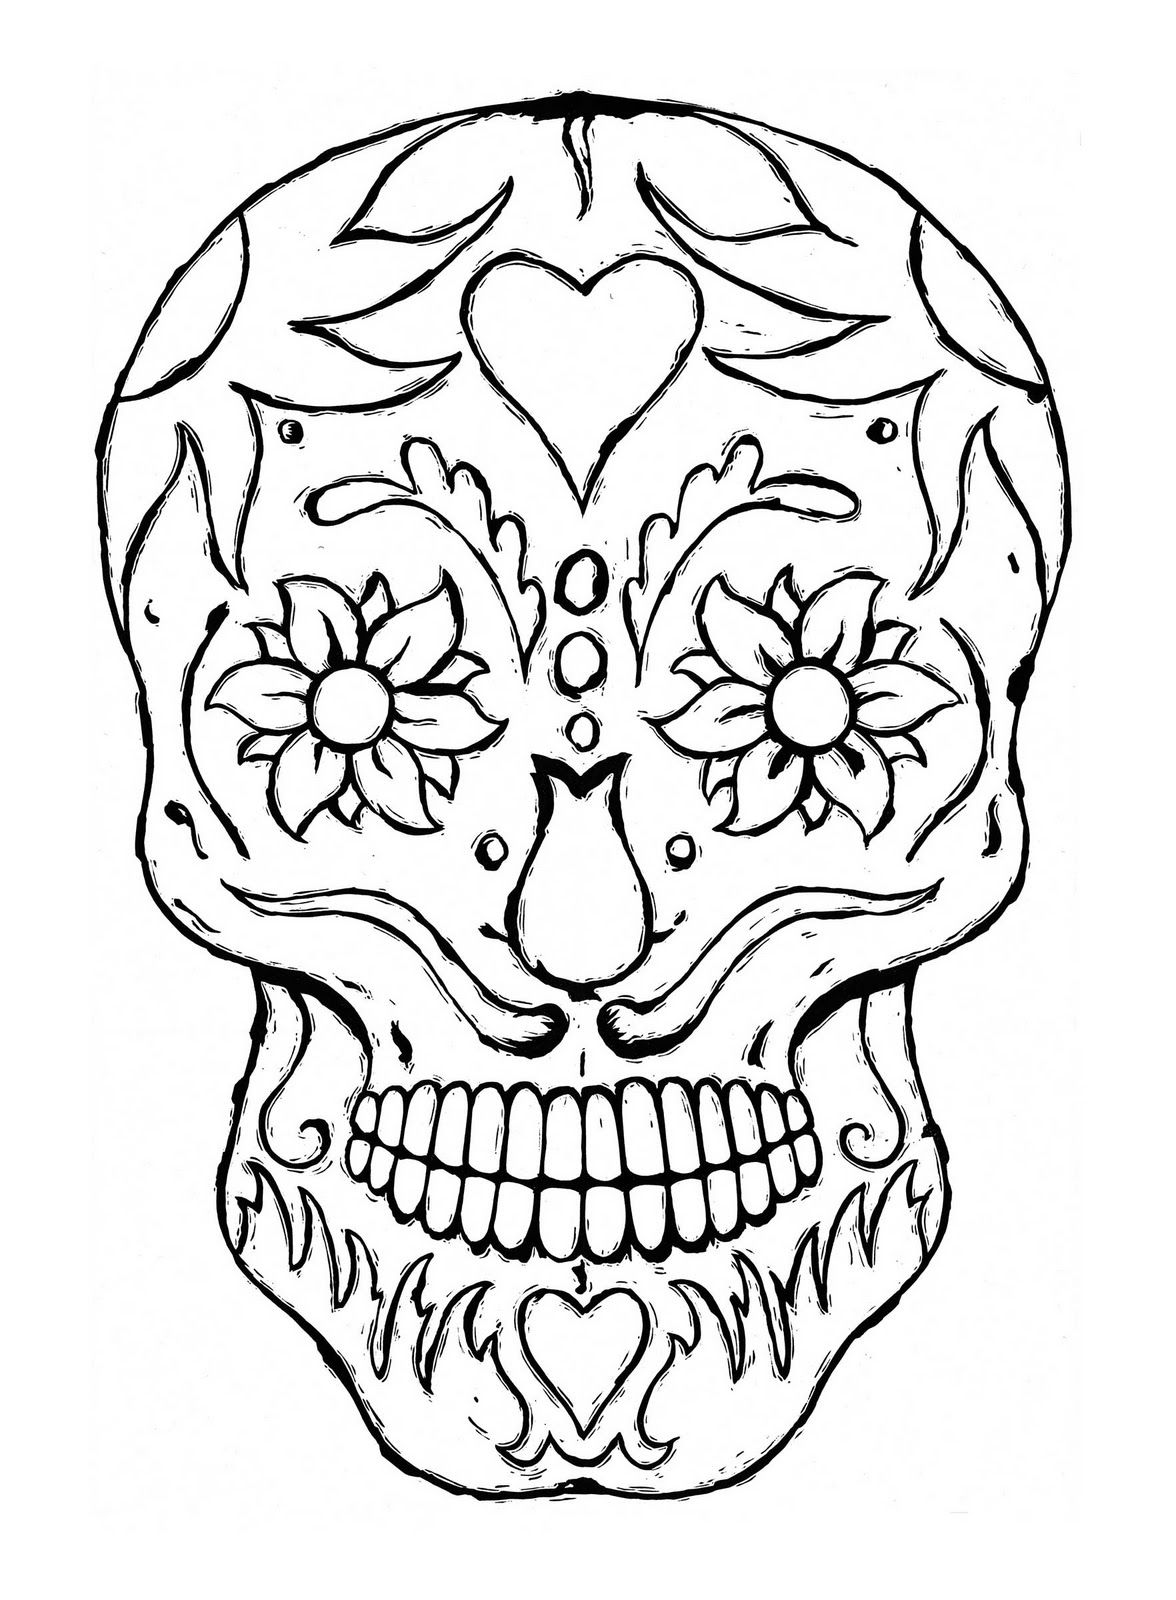 Free coloring pages sugar skulls - Sugar Skull Coloring Pages Google Search